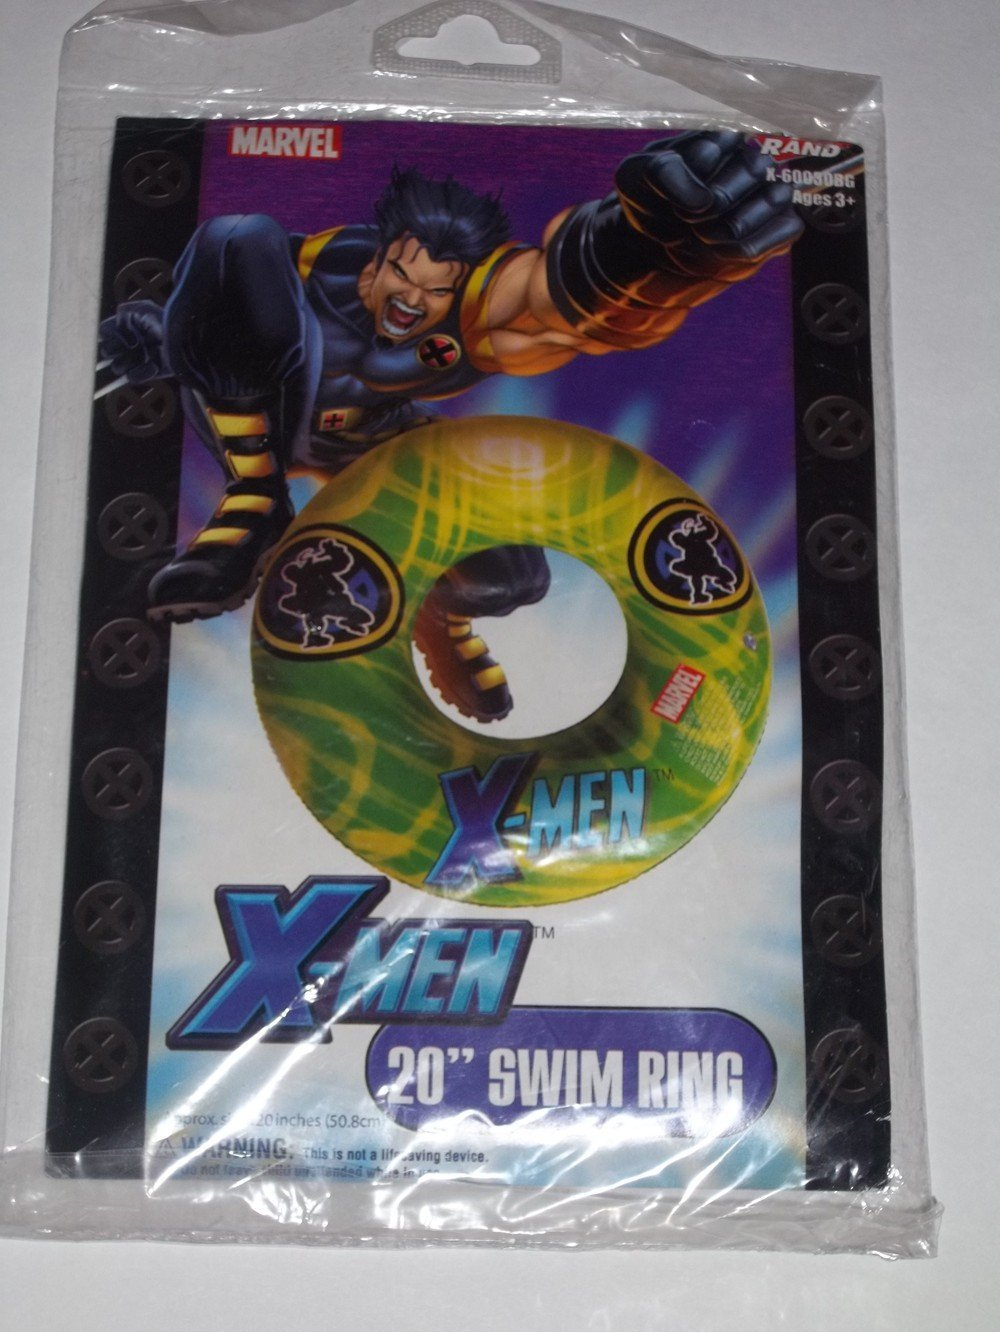 "Marvel X-Men 20"" Swim Ring"